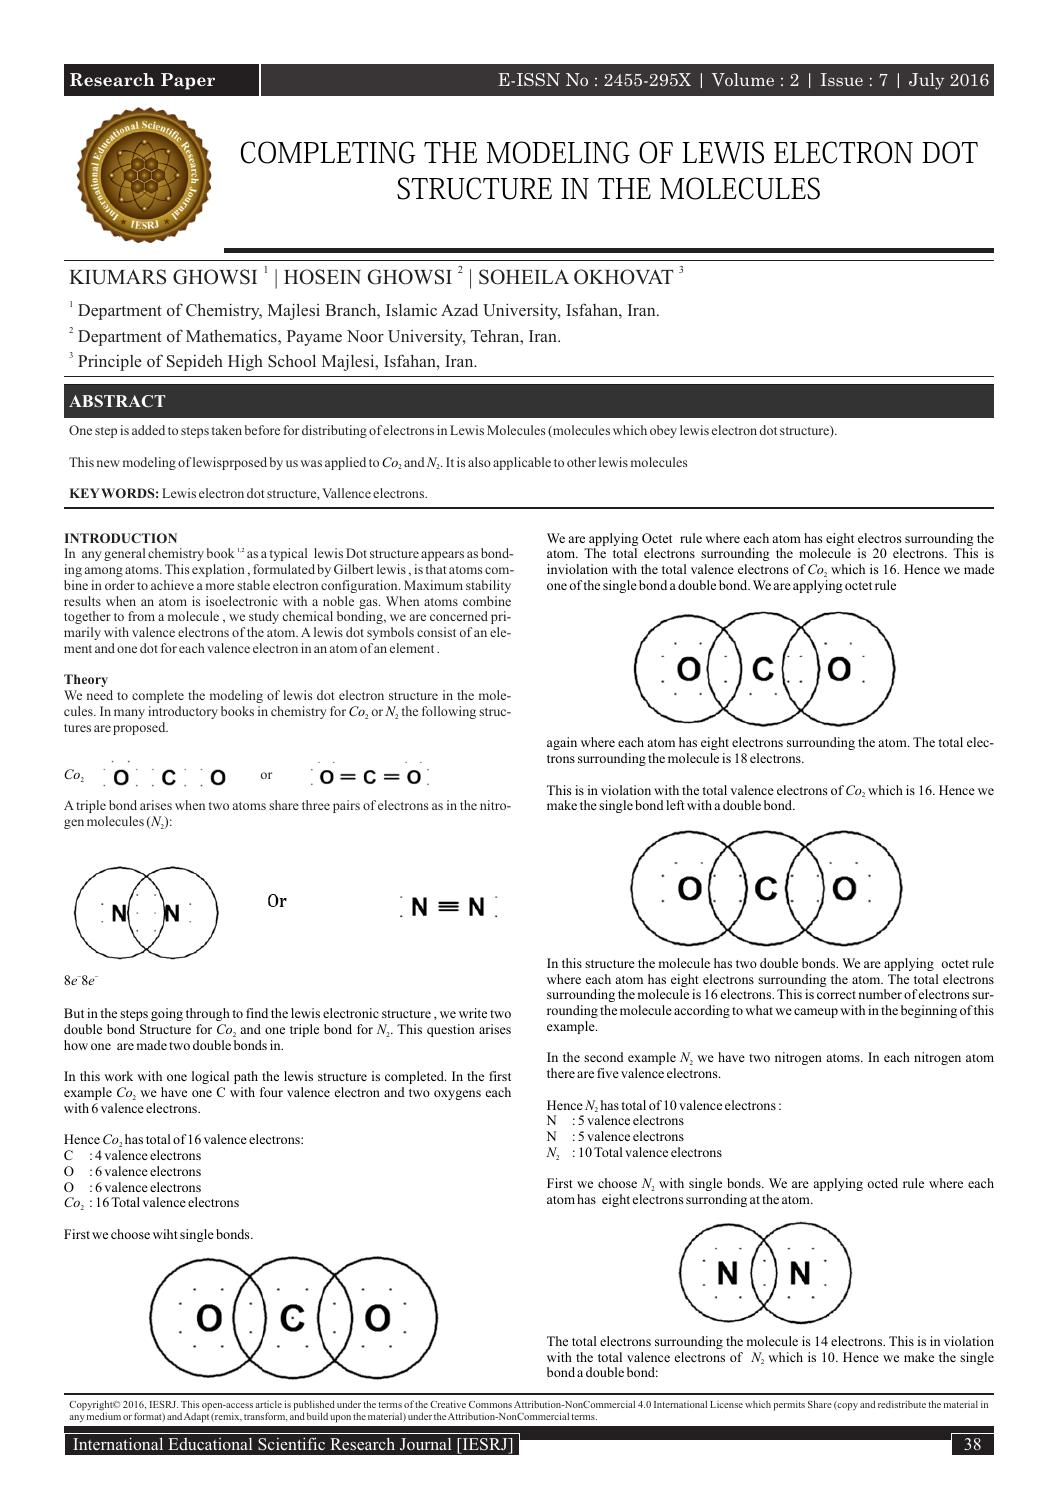 hight resolution of completing the modeling of lewis electron dot structure in the molecules by international educational scientific research journal issuu